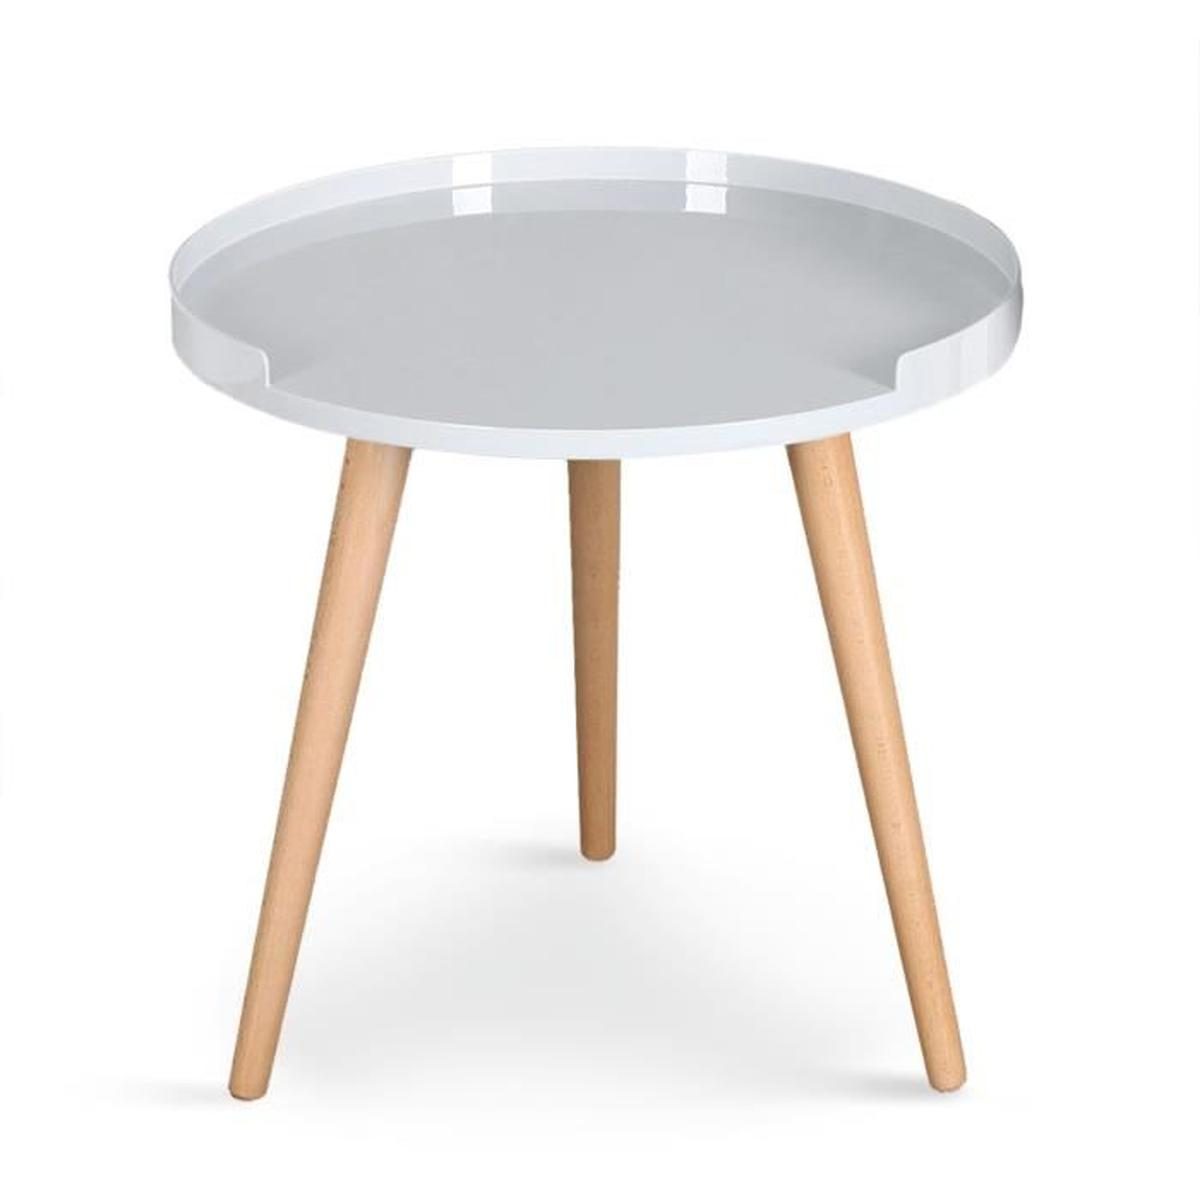 Table d'appoint scandinave jaune